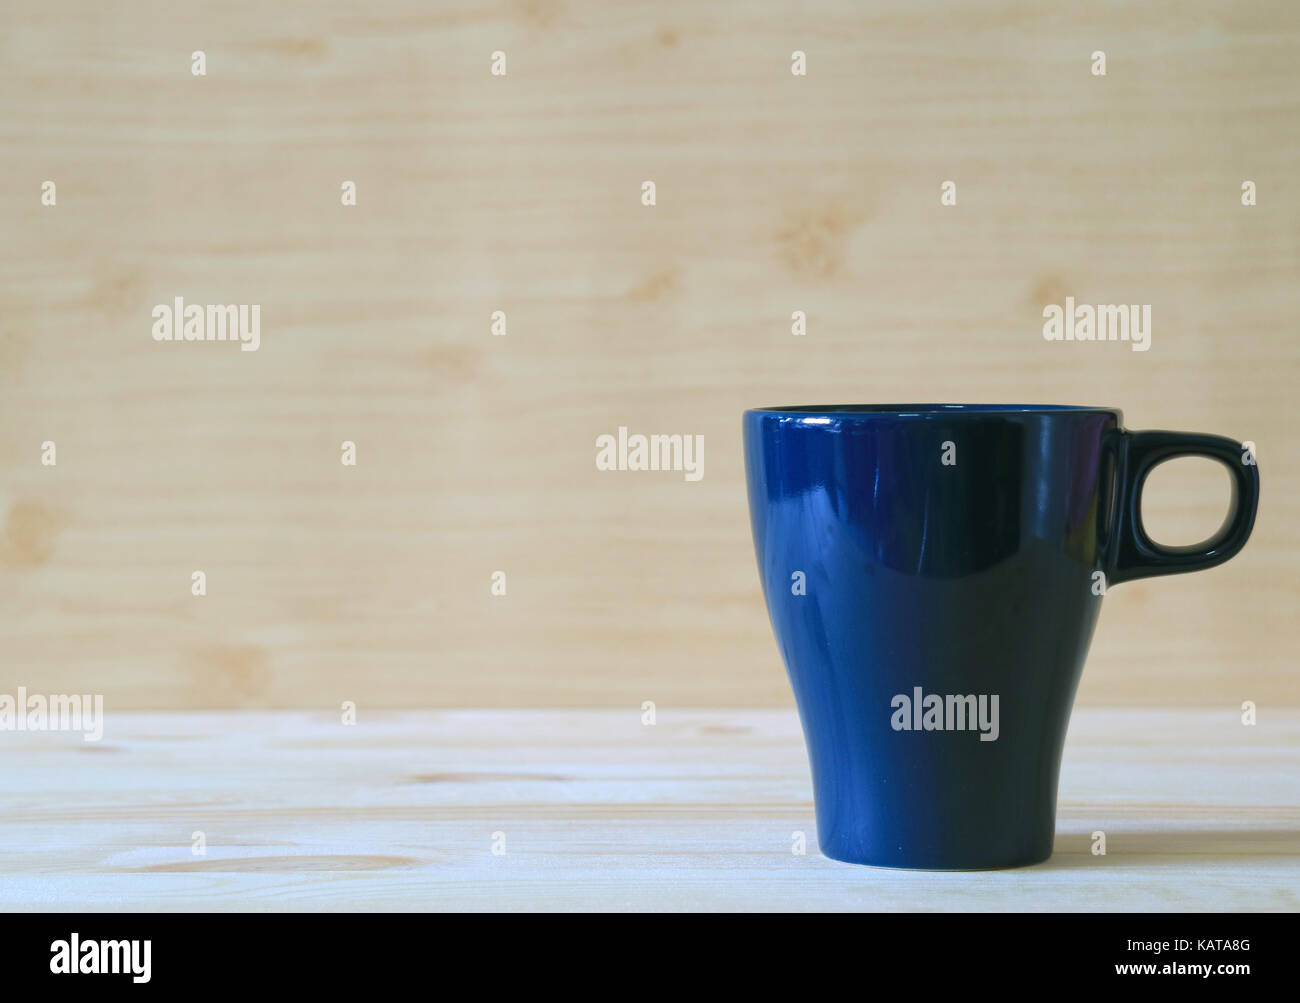 Front view of navy blue mug on the light color wooden table - Stock Image